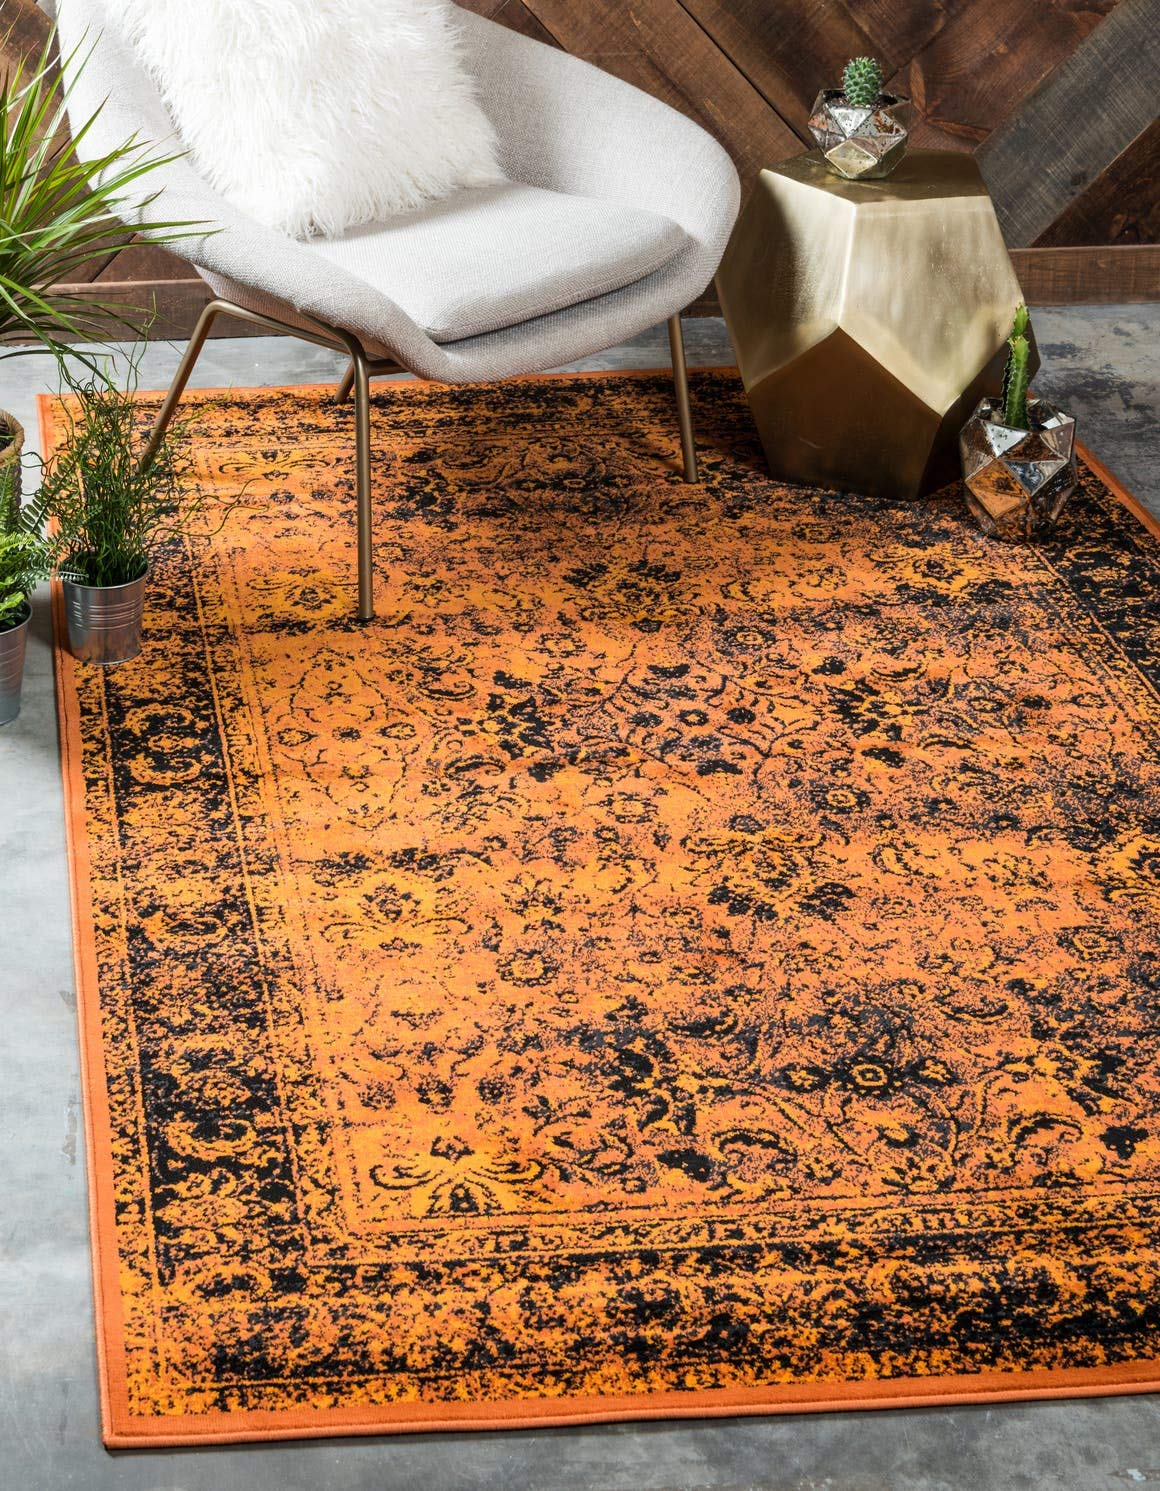 Unique Loom Imperial Collection Modern Traditional Vintage Distressed Terracotta Black Area Rug 4 0 x 6 0